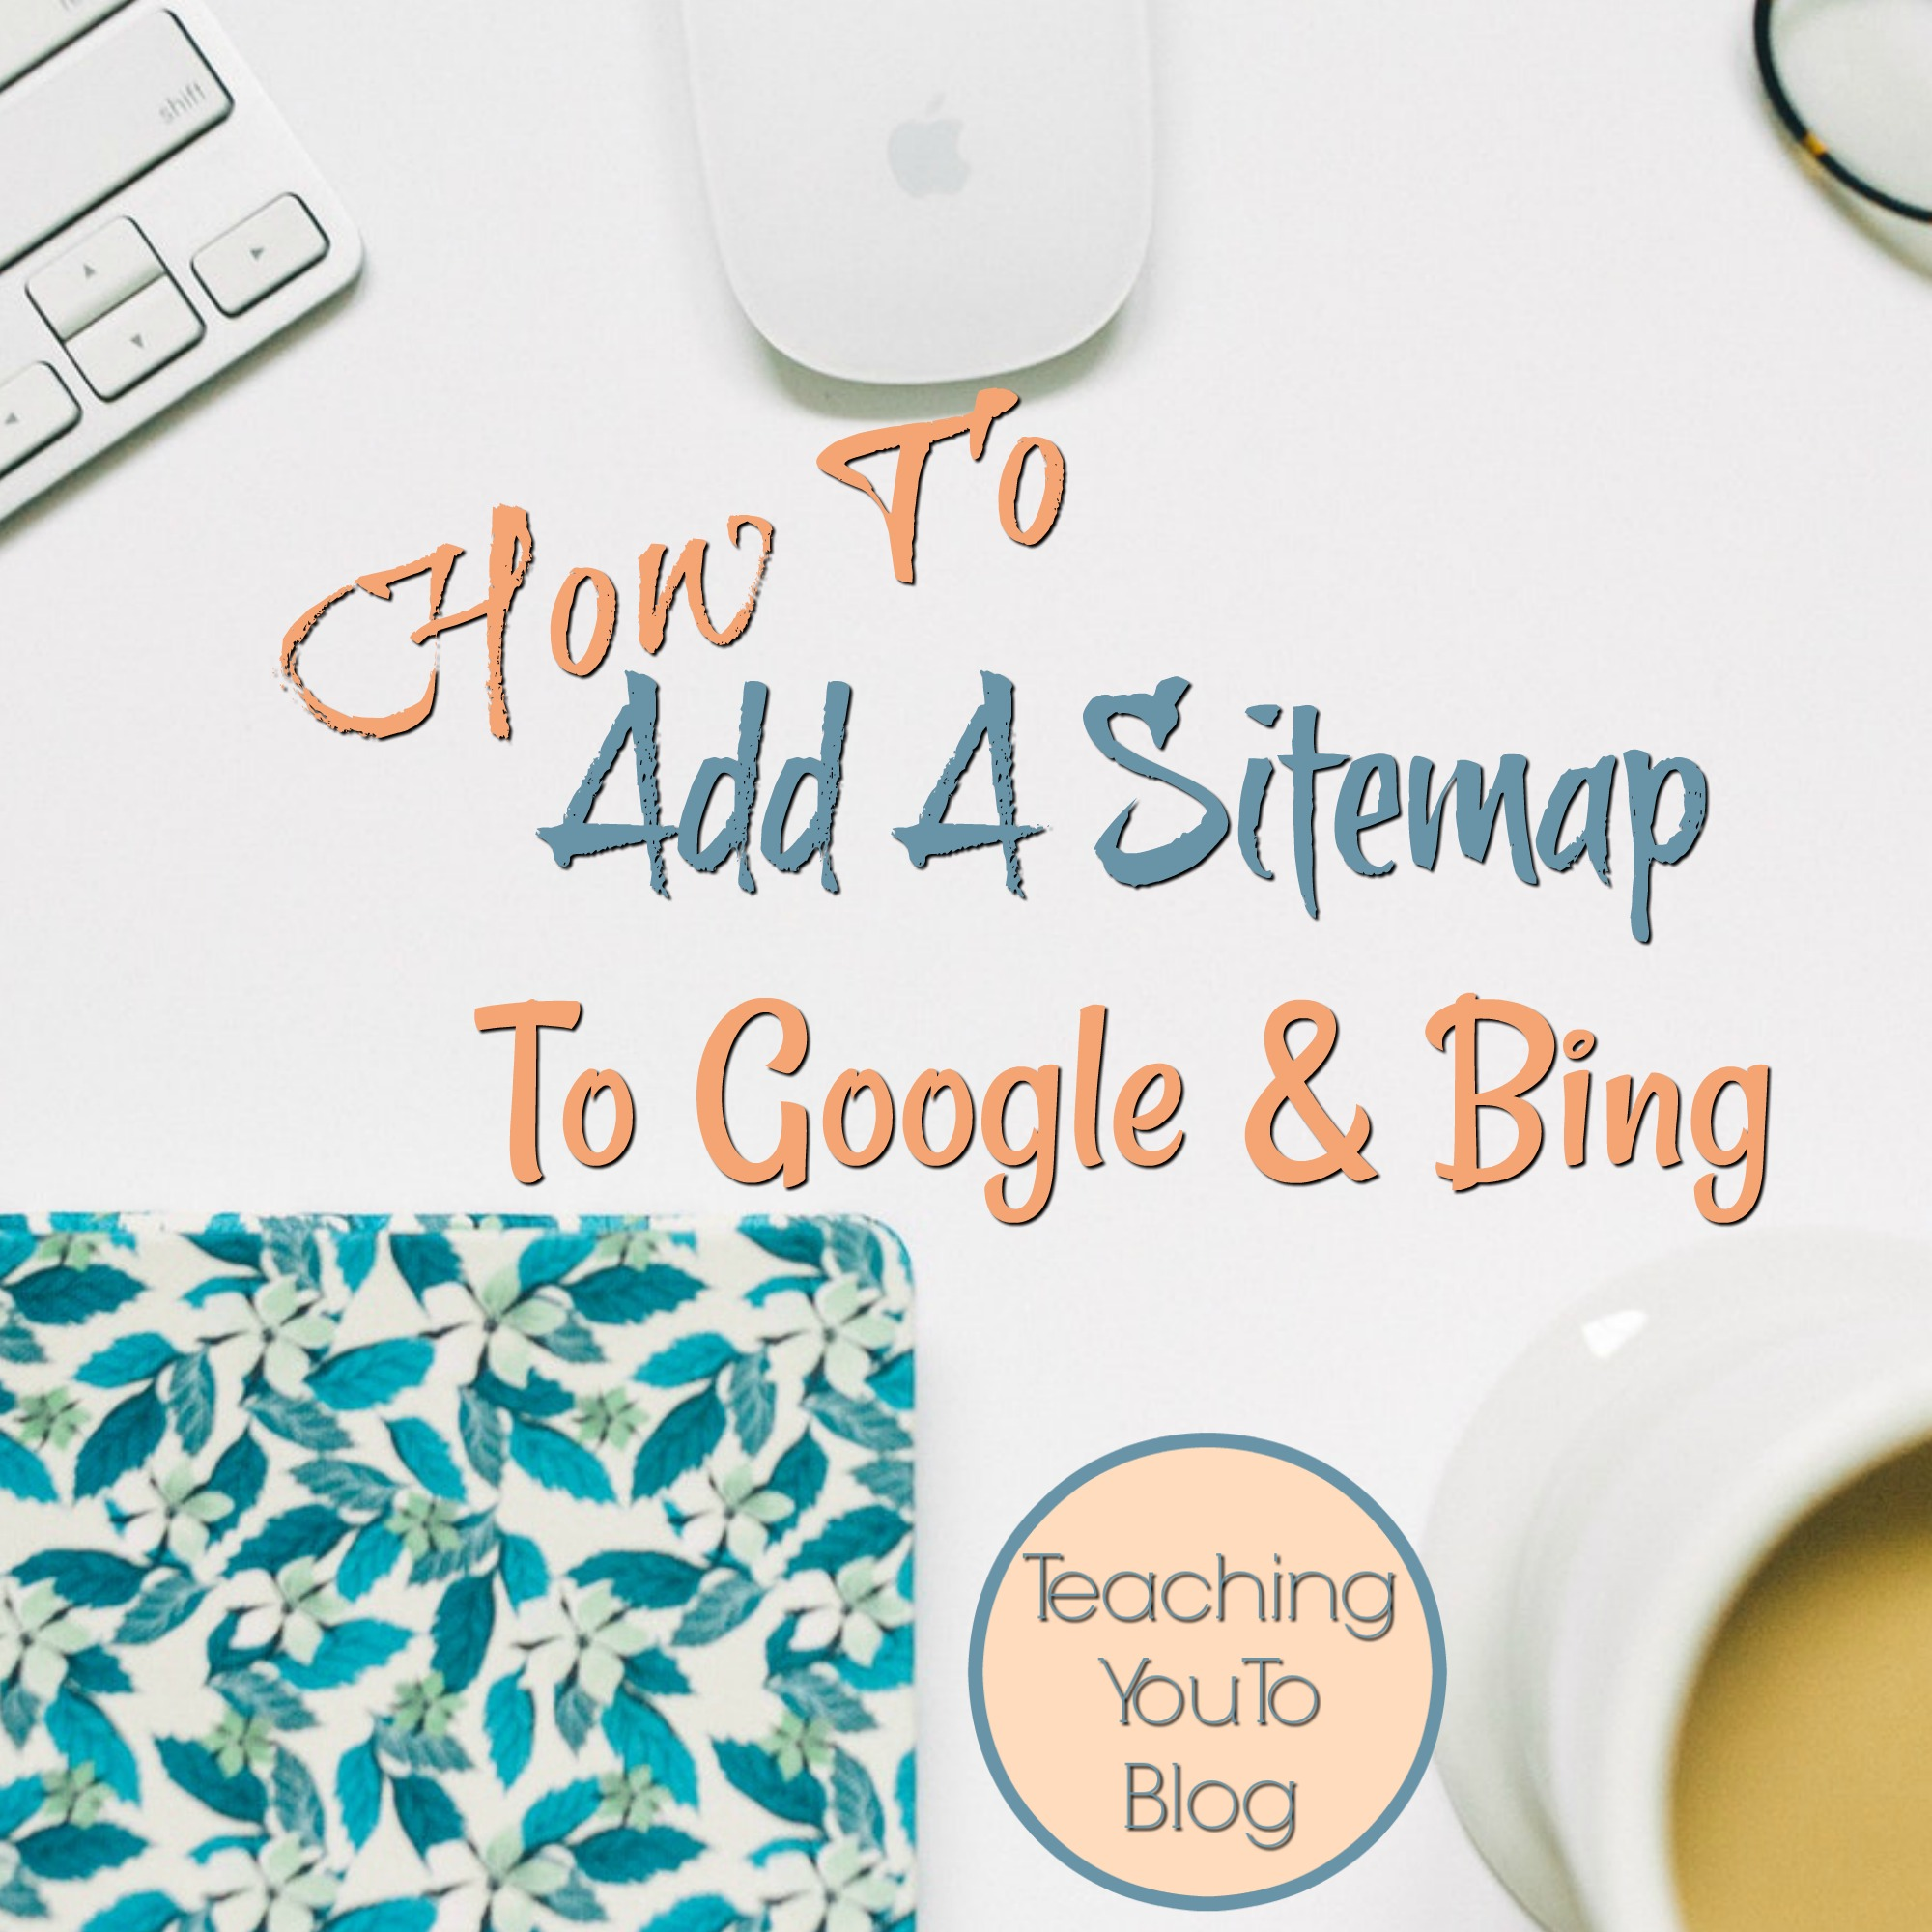 Bing Sitemap Generator: How To Add A Sitemap To Google And Bing